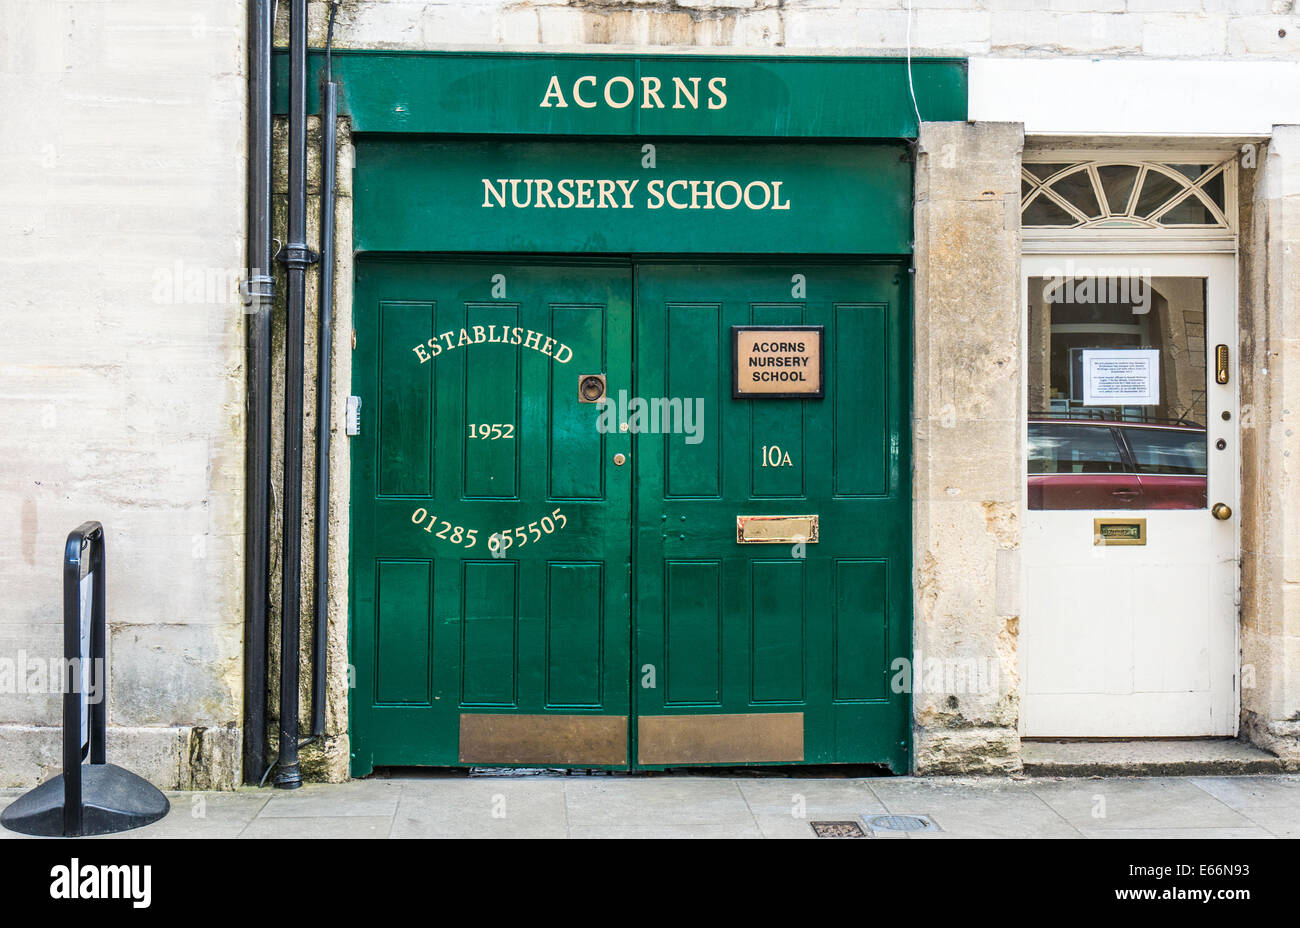 Double green doors - the entrance to Acorns Nursery School (established 1952), Cirencester town centre, Cotswolds, - Stock Image